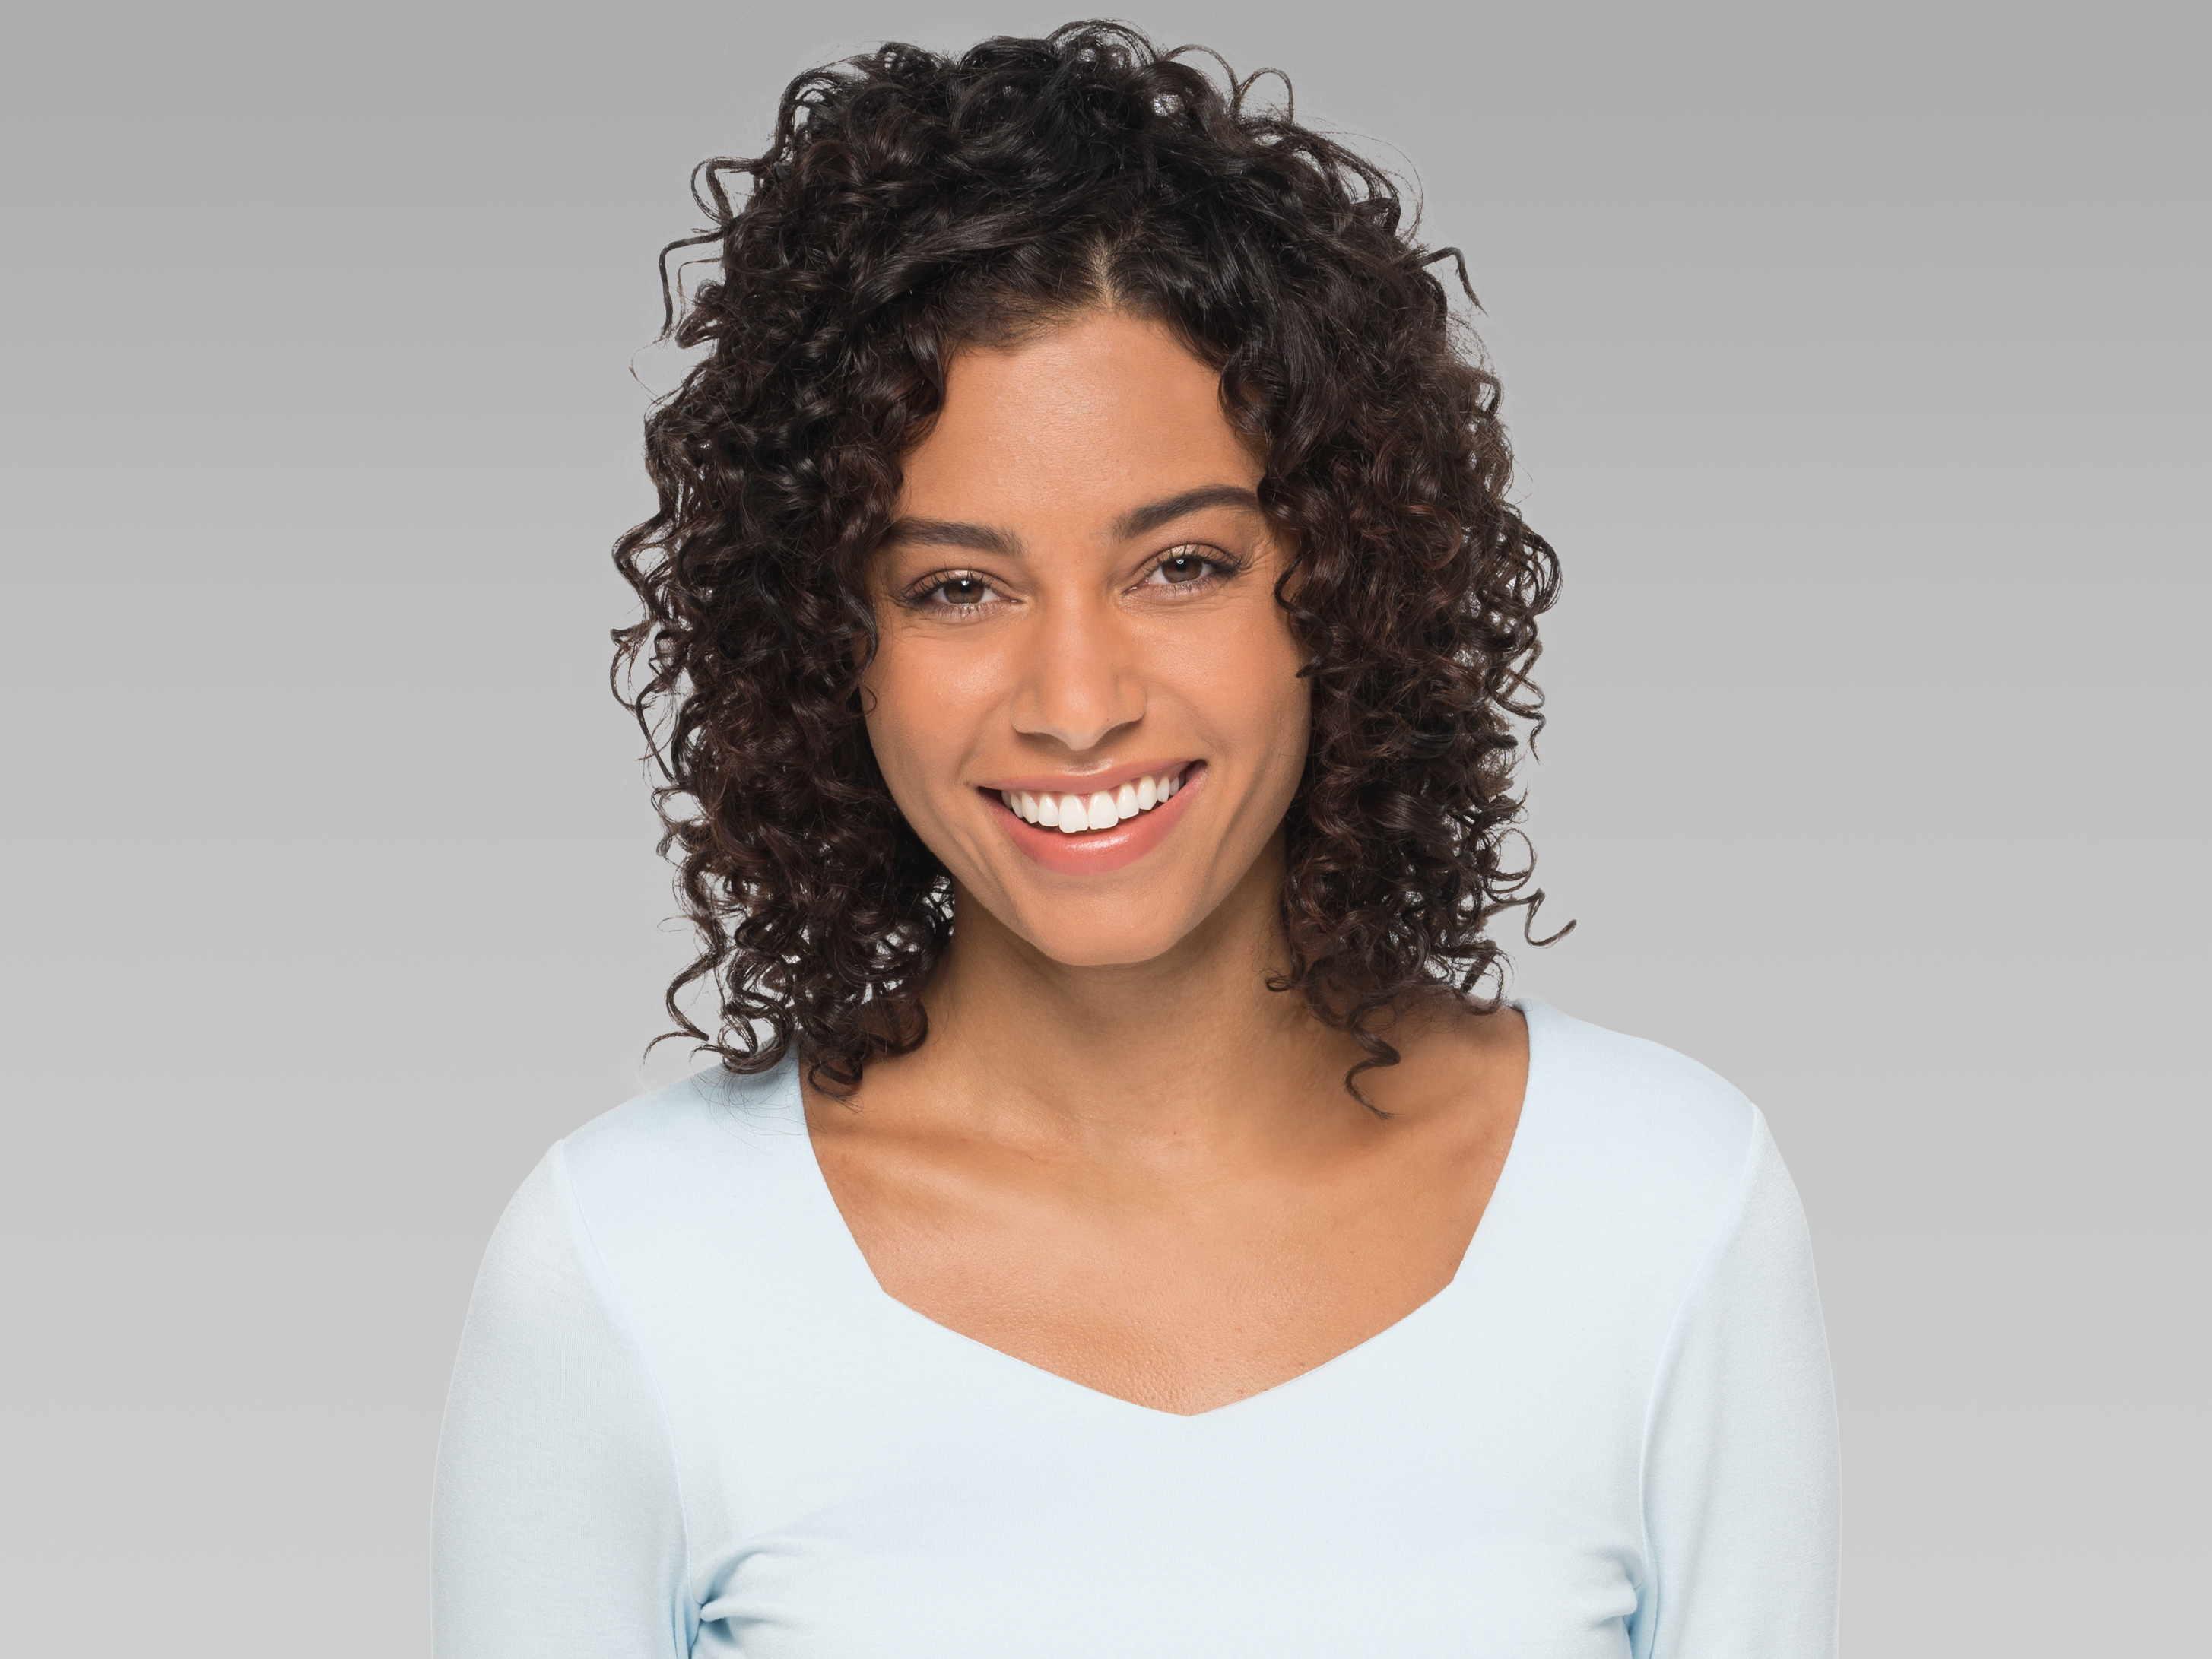 long curly haircuts with layers layers with curls s hairstyles supercuts 5781 | supercuts blaine hero hairstyles long layers with curls front 4x3